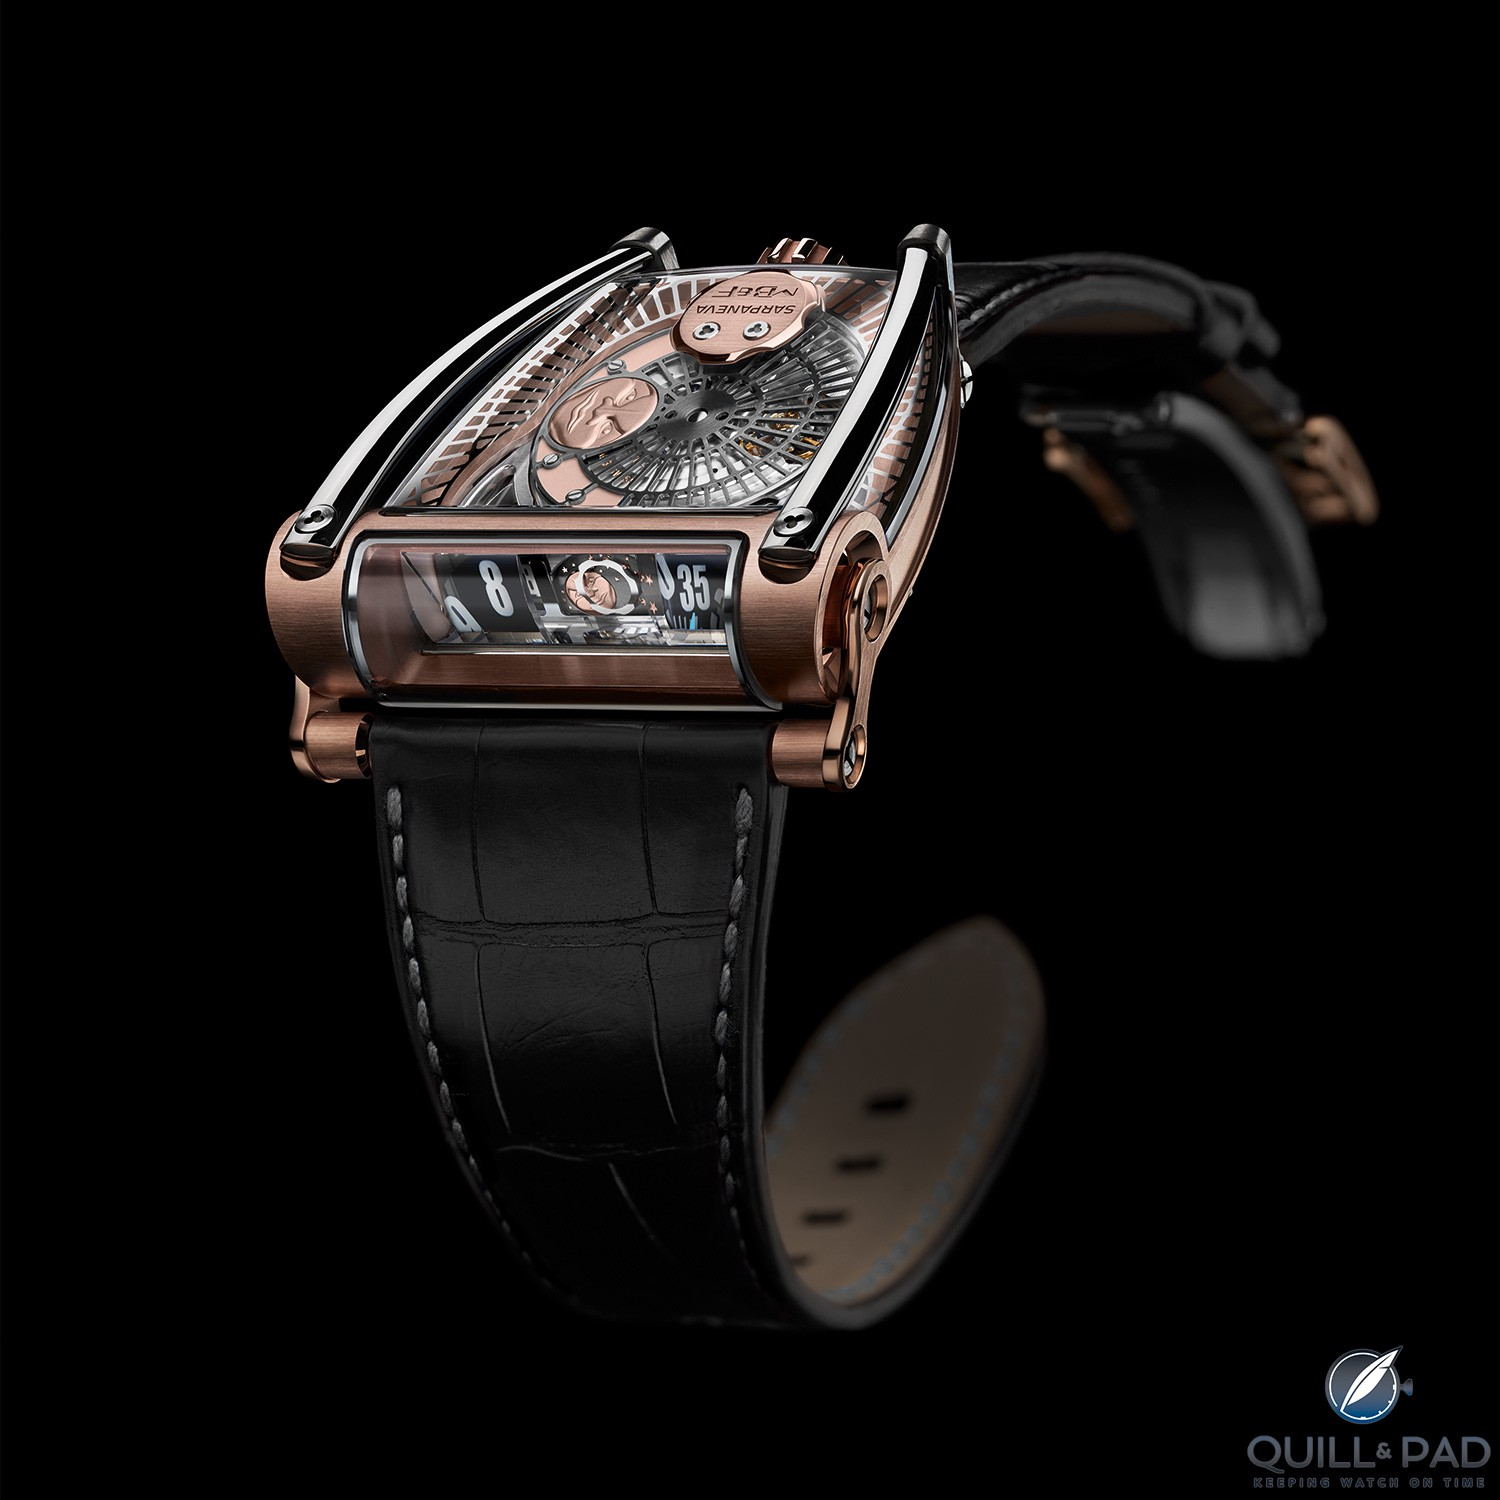 MoonMachine 2 by MB&F with Stepan Sarpaneva in red gold